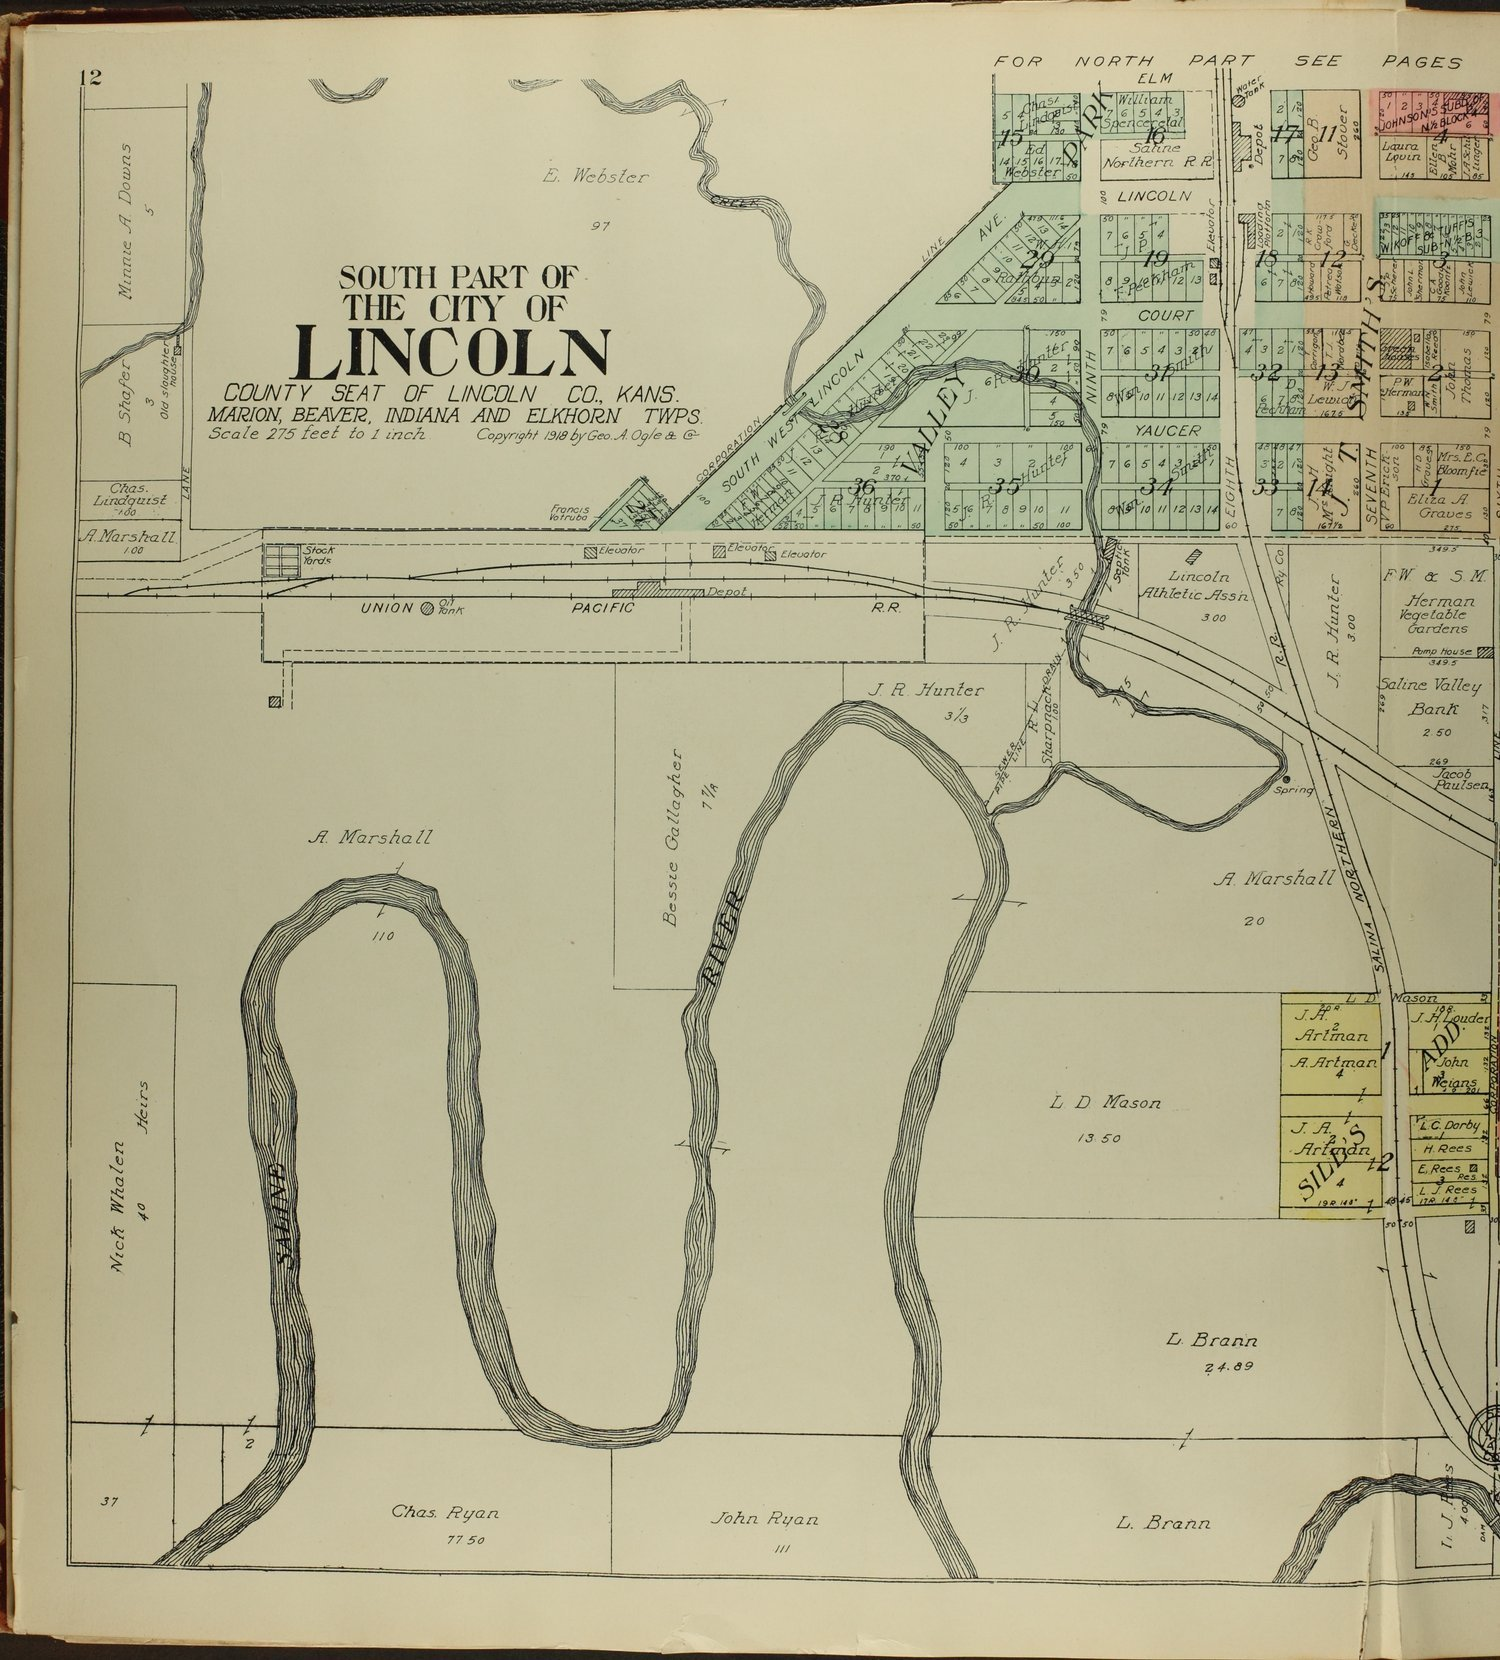 Standard atlas of Lincoln County, Kansas - 12